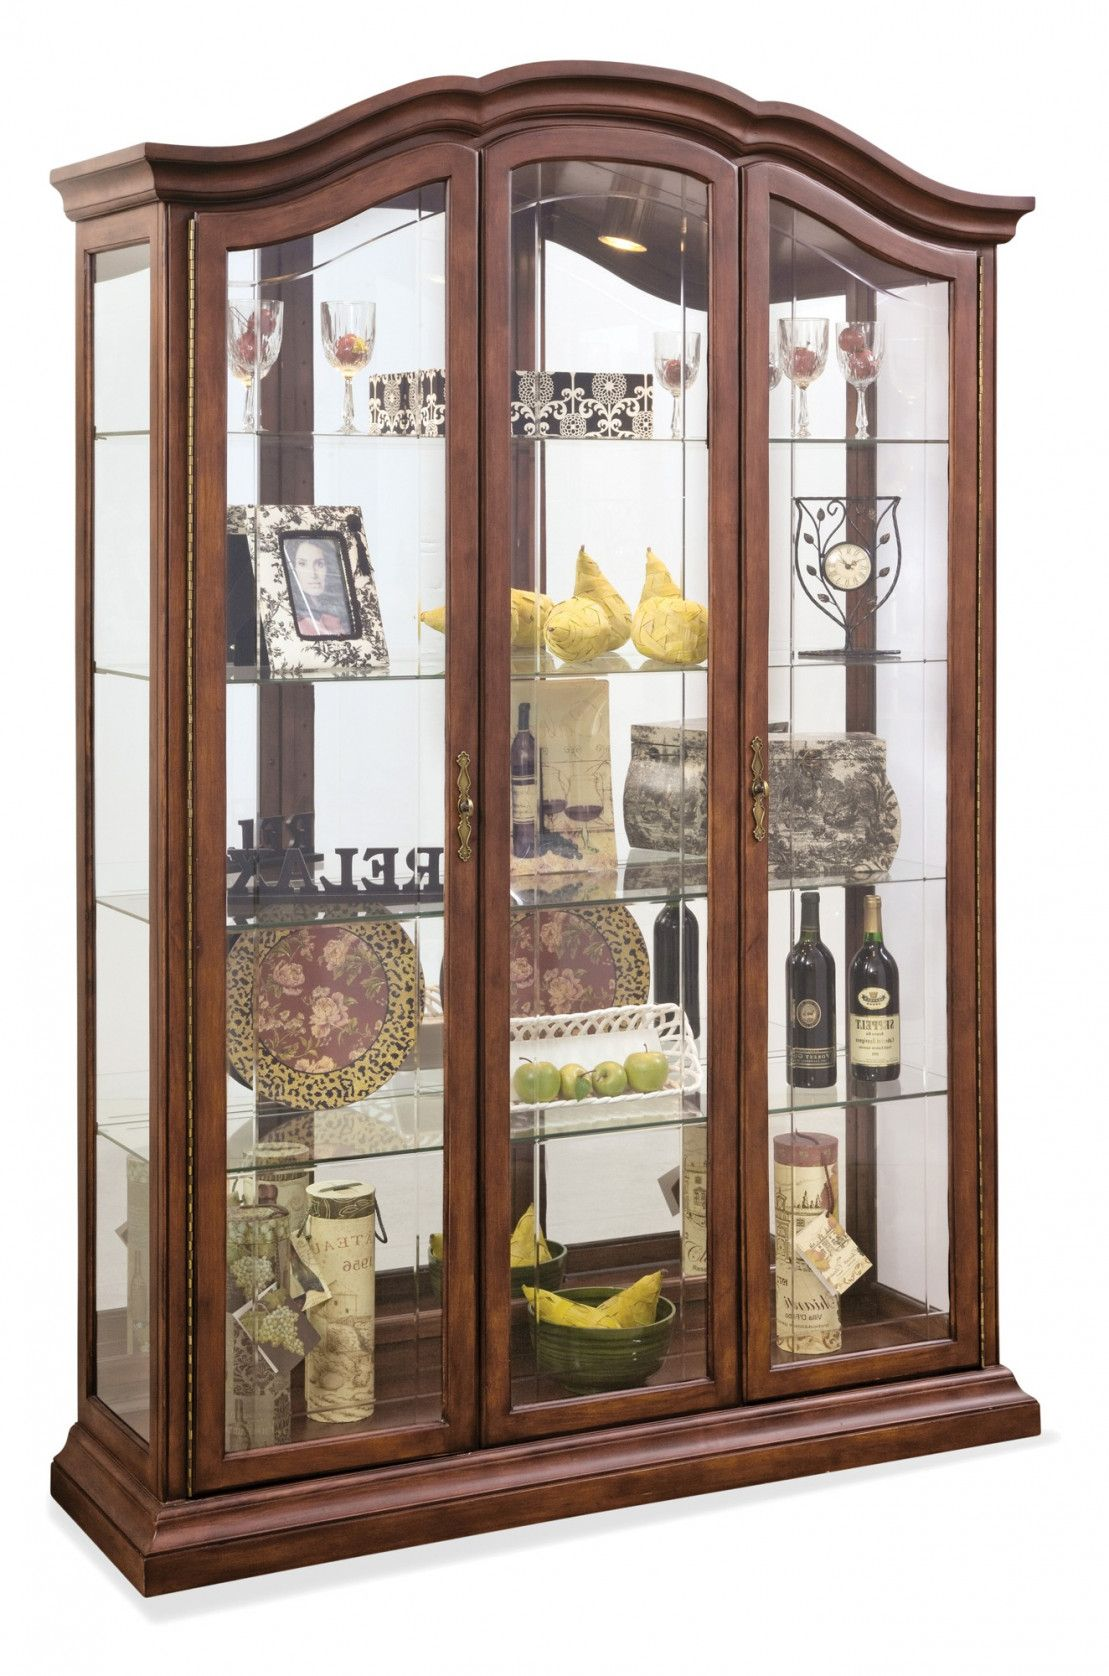 display cabinet lighting ideas. 50+ Display Cabinet For Home - Kitchen Lighting Ideas Check More At  Http: Display Cabinet Lighting Ideas